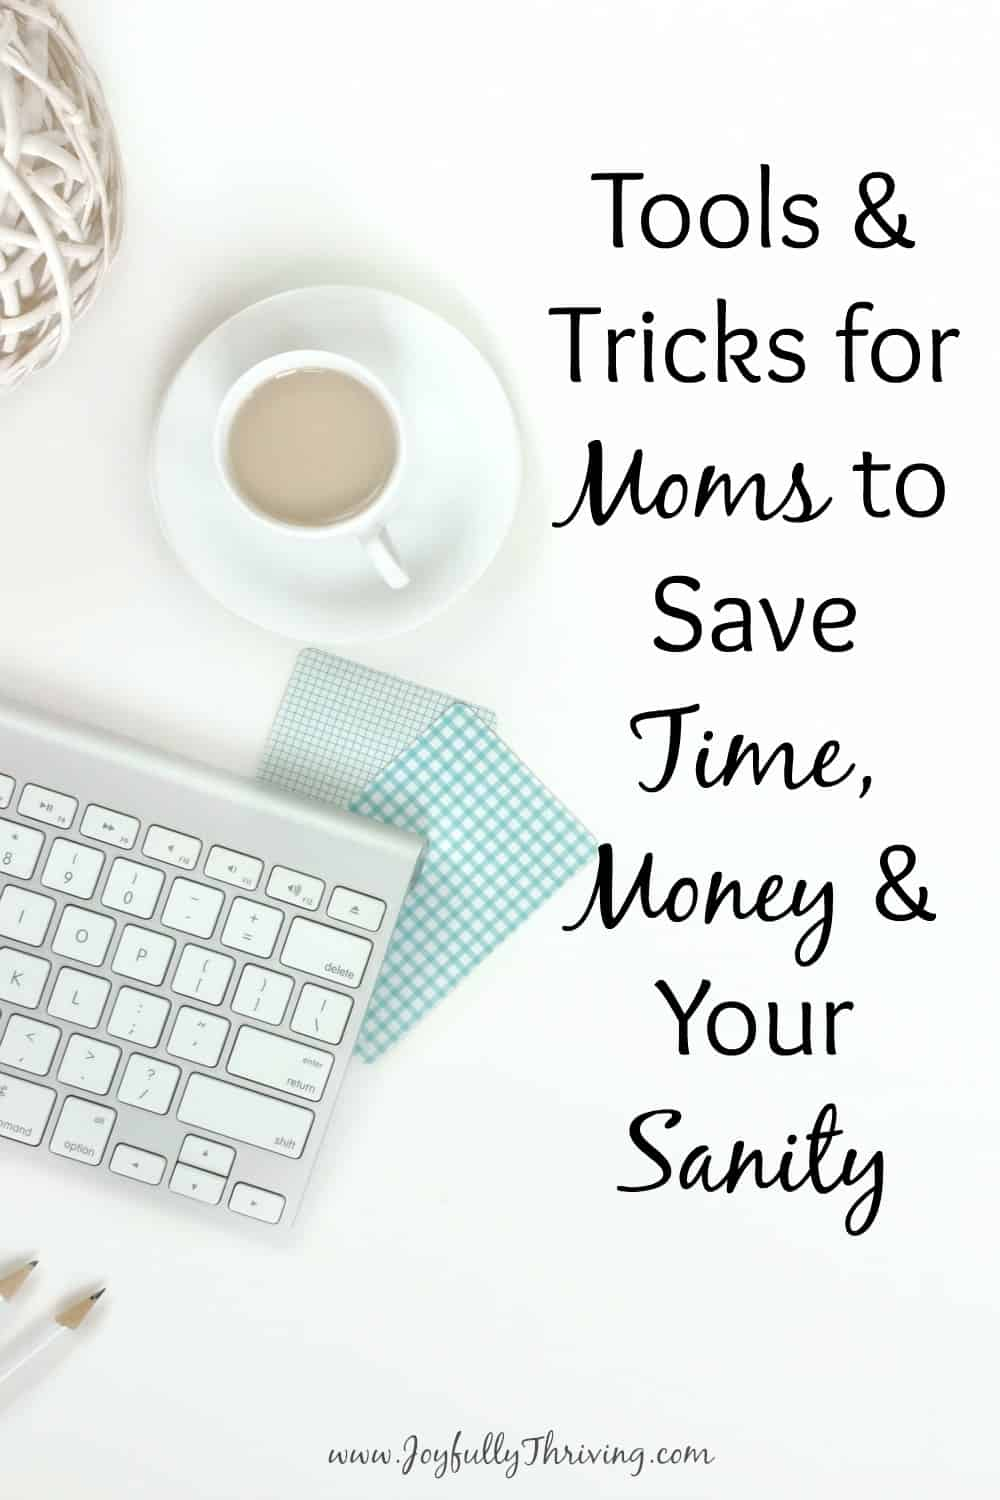 Love this! Because what mom isn't busy? 8 great ideas, but 2 is definitely one I'm going to use.